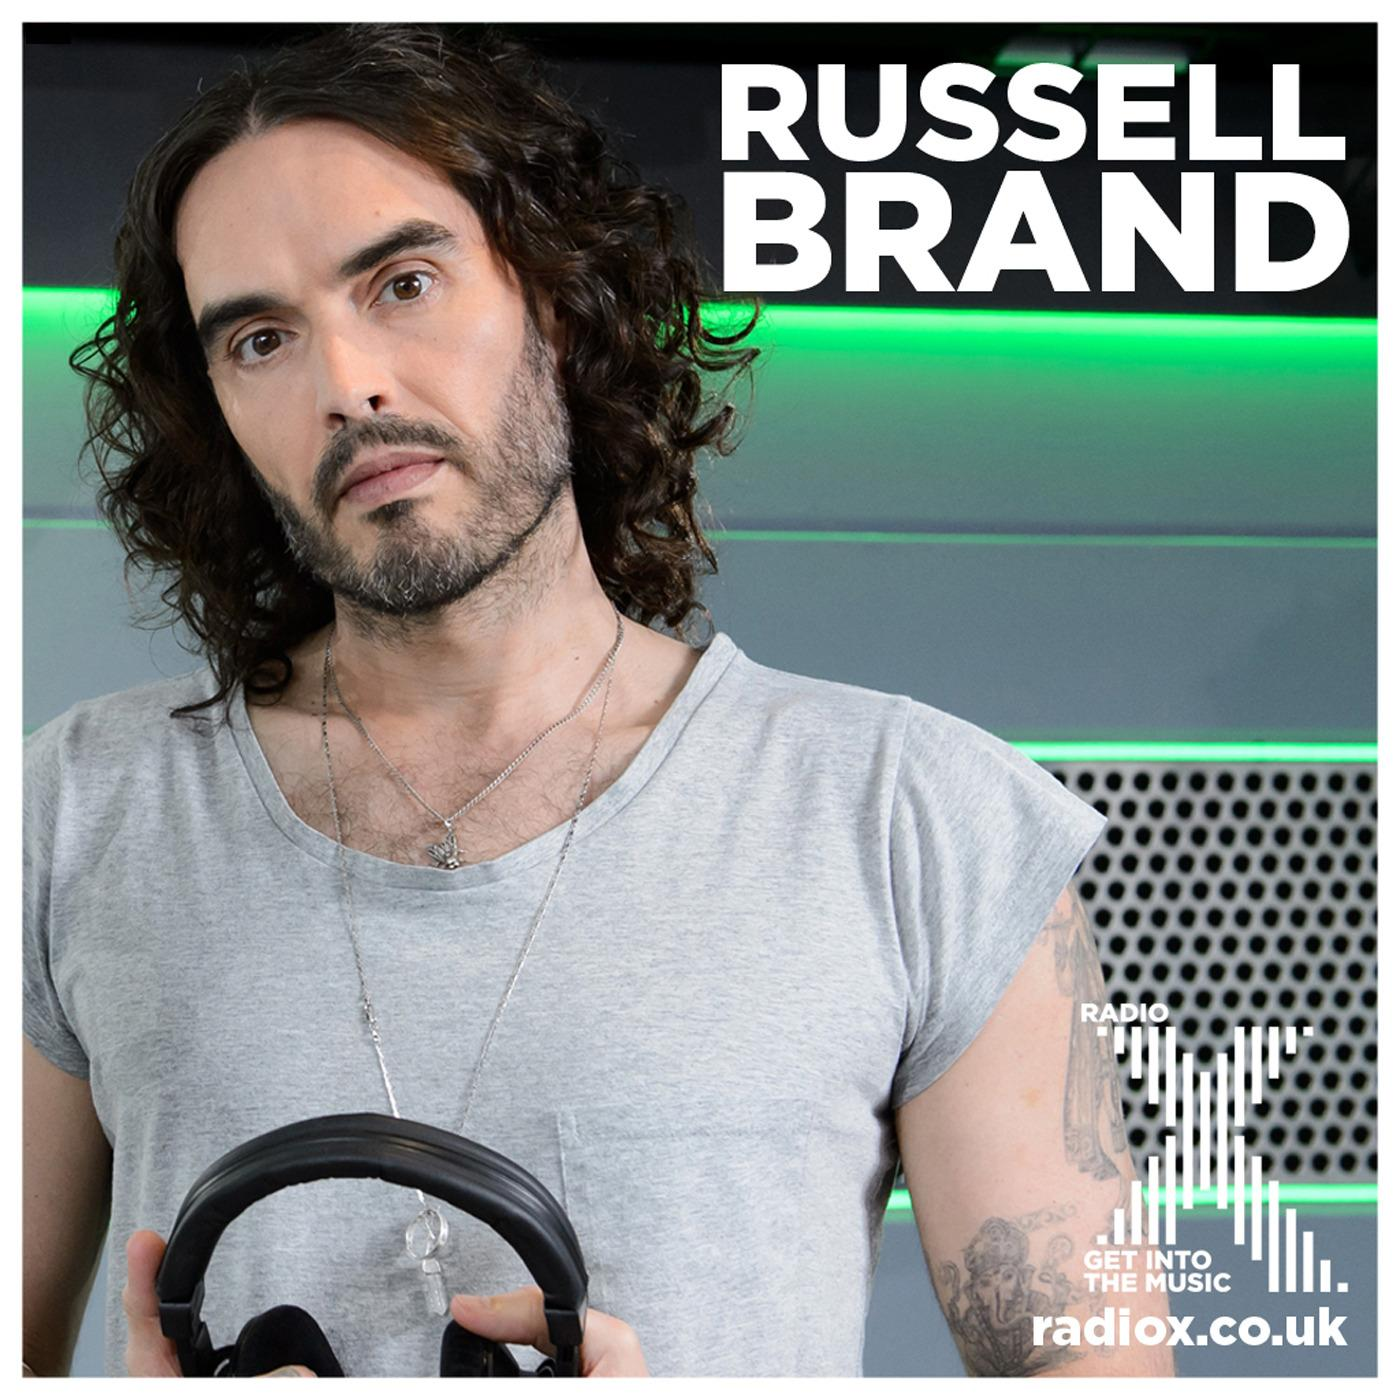 Russell Brand on Radio X Podcast